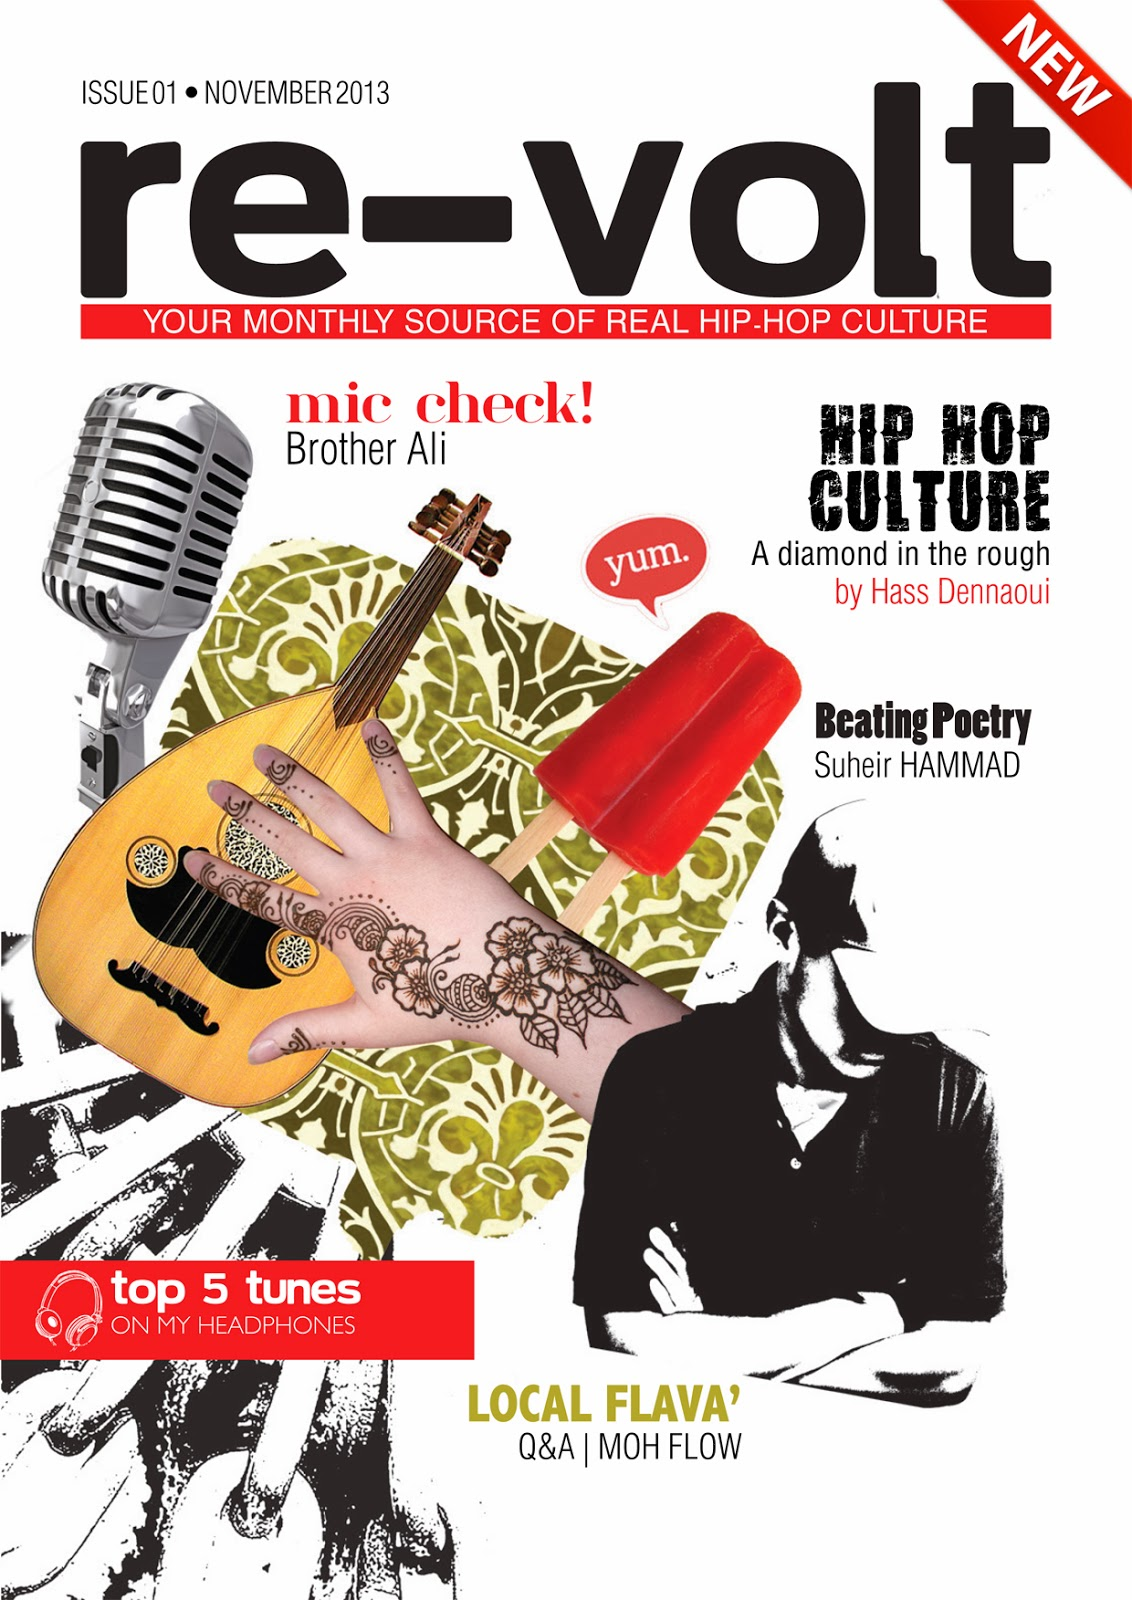 REVOLT MAGAZINE COVER_Issue01